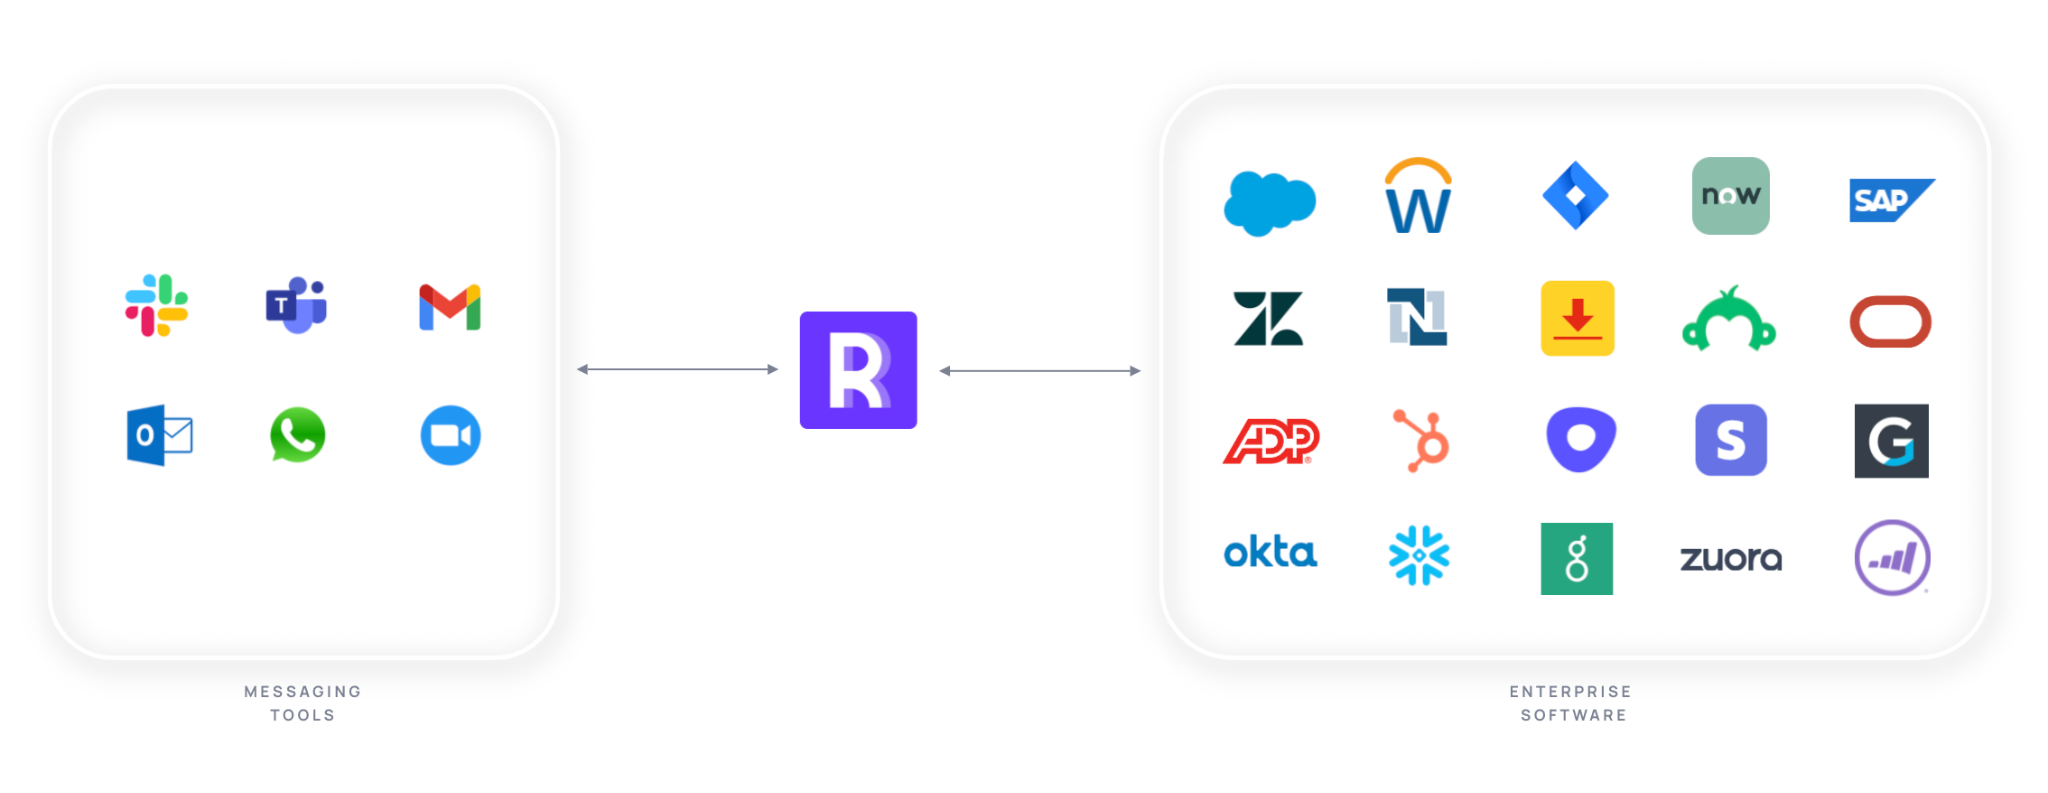 Rattle is the middleware between enterprise software and messaging apps